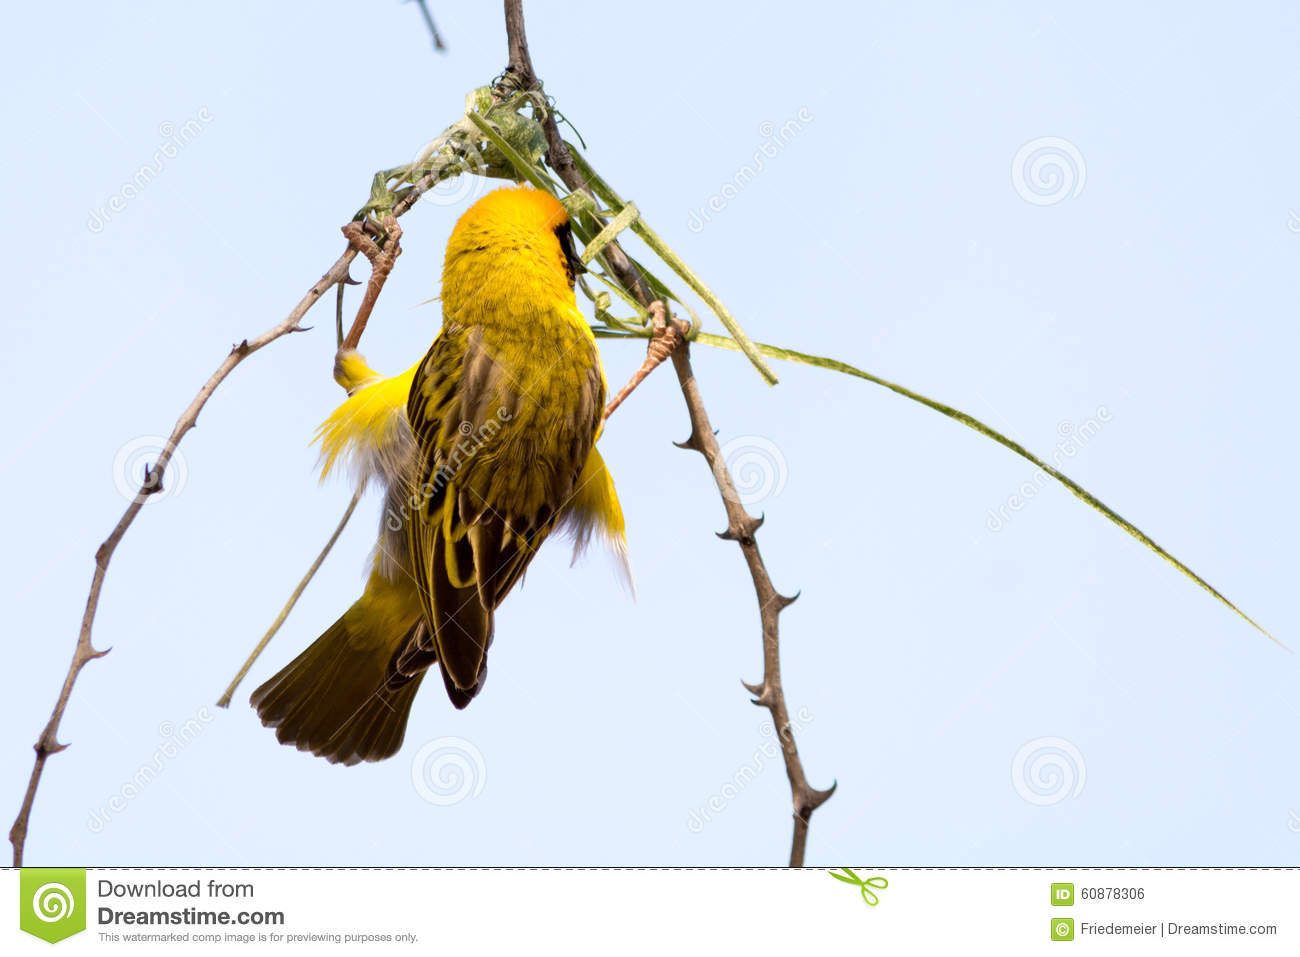 Male Weaver Bird Building A Nest Of Grass In The Tree Stock Photo